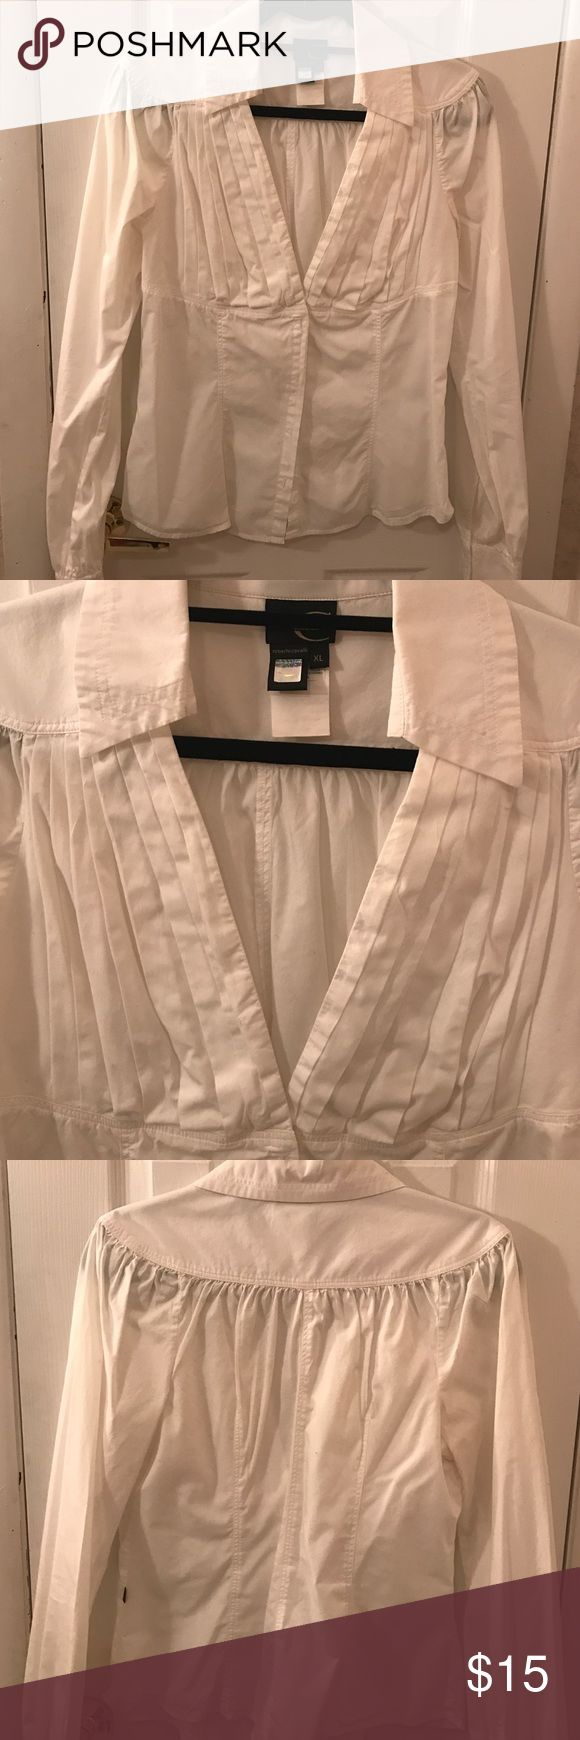 White cotton blouse White cotton blouse with deep pleated V-neck with snap closure at the top, button down. L/S Just Cavalli Tops Blouses